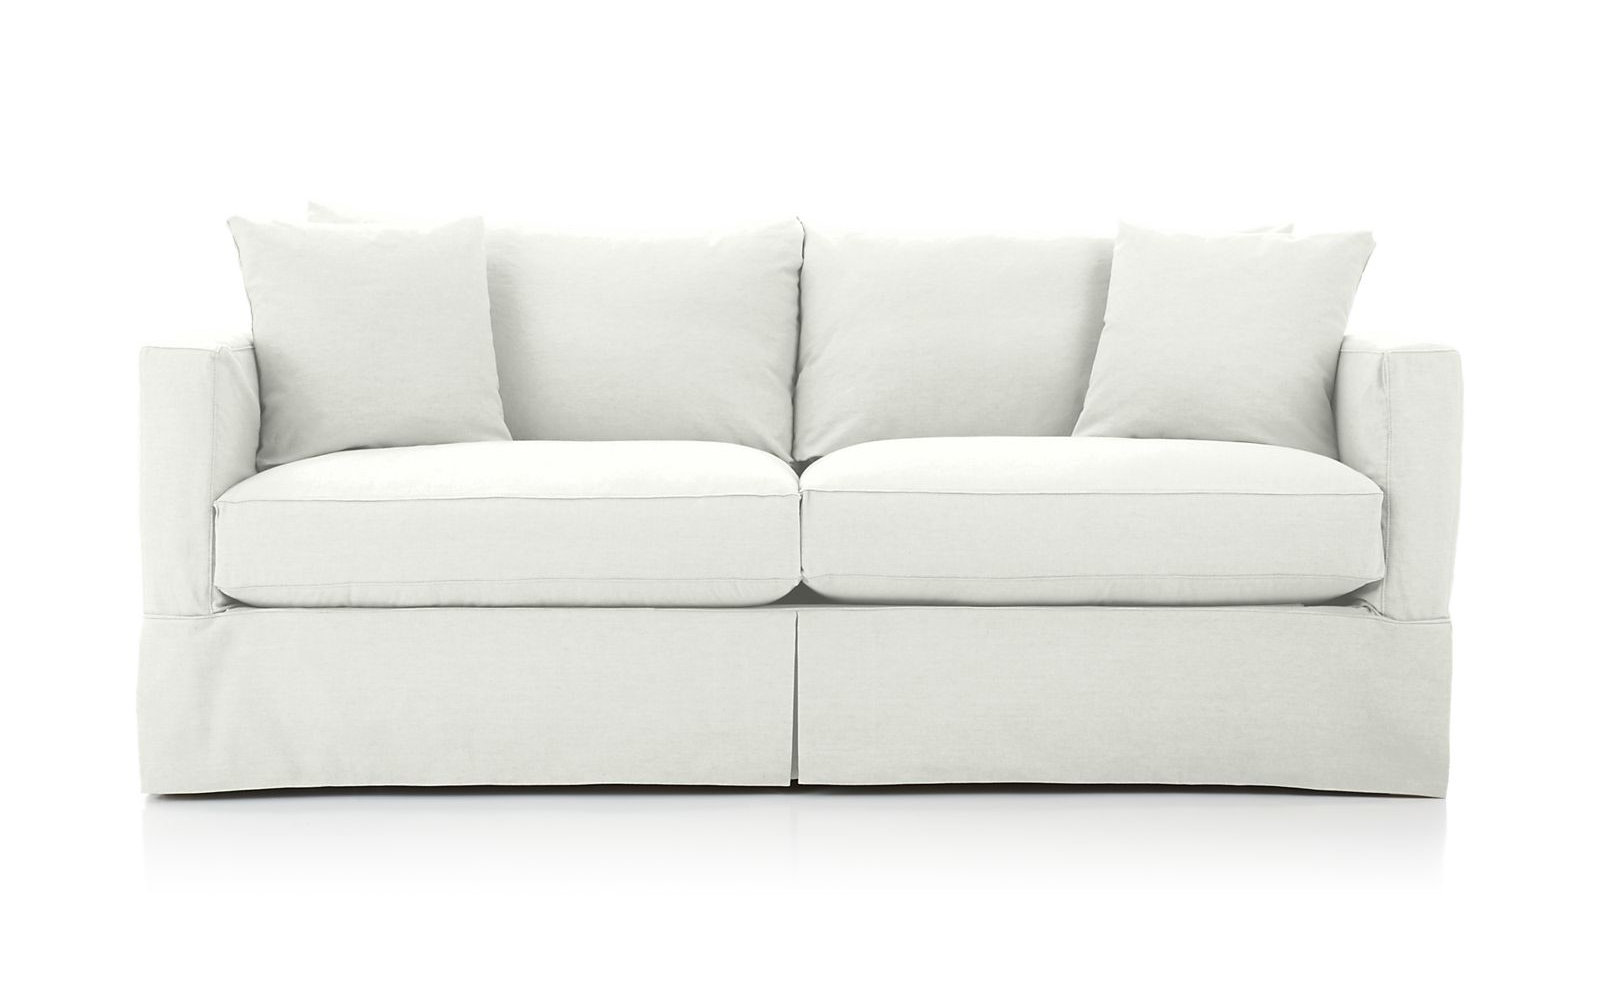 Crate and Barrel Willow Sofa in Snow